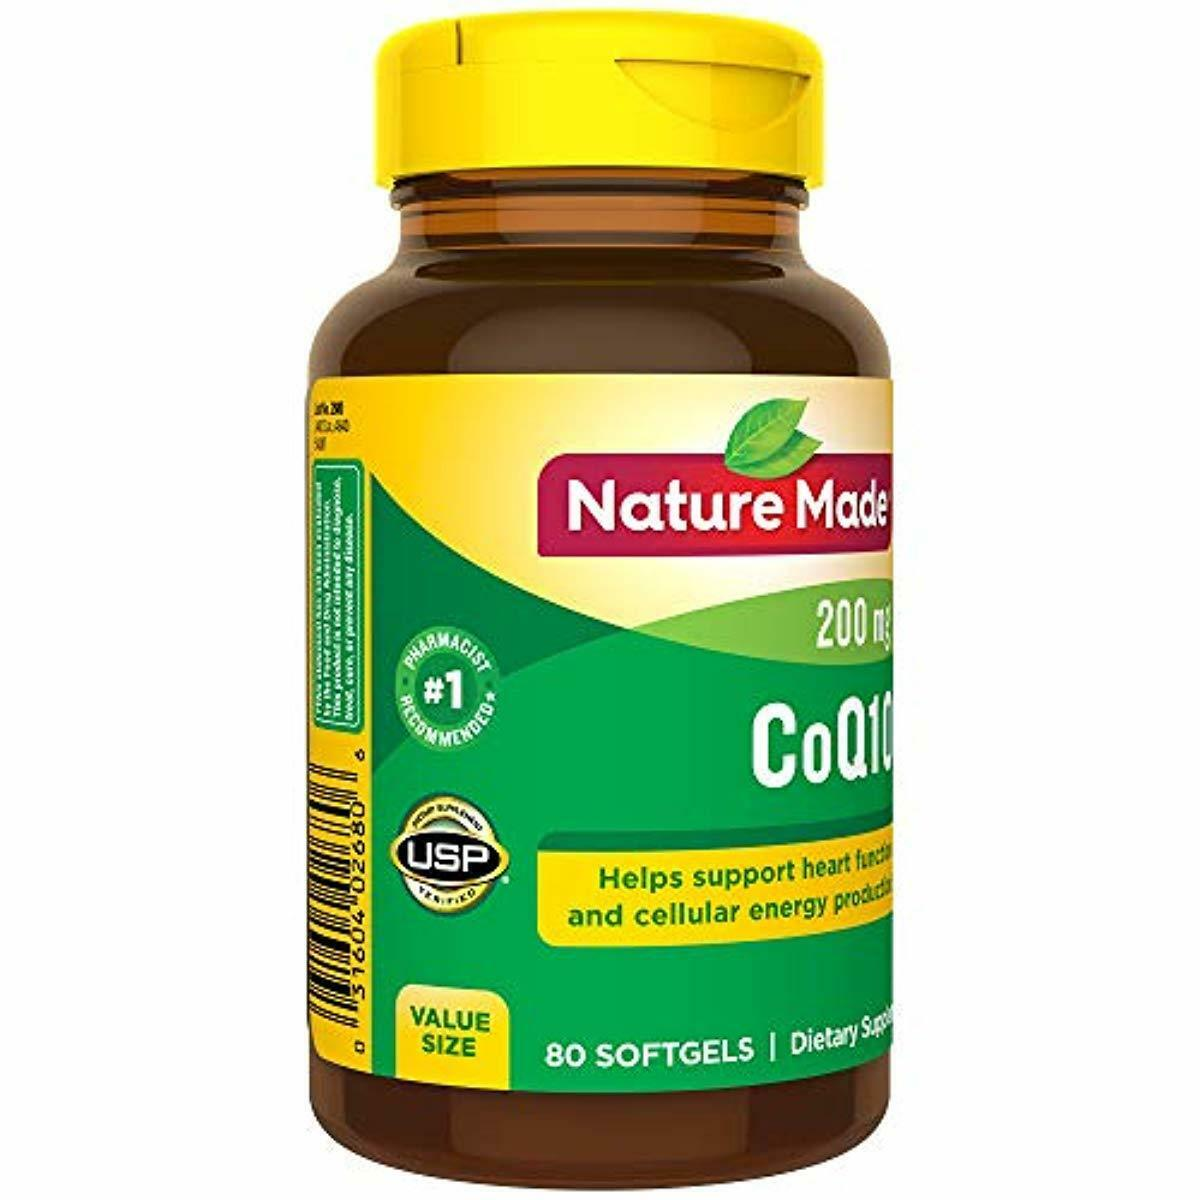 Nature Made CoQ10 200 mg Softgels, 80 Count Value Size for H